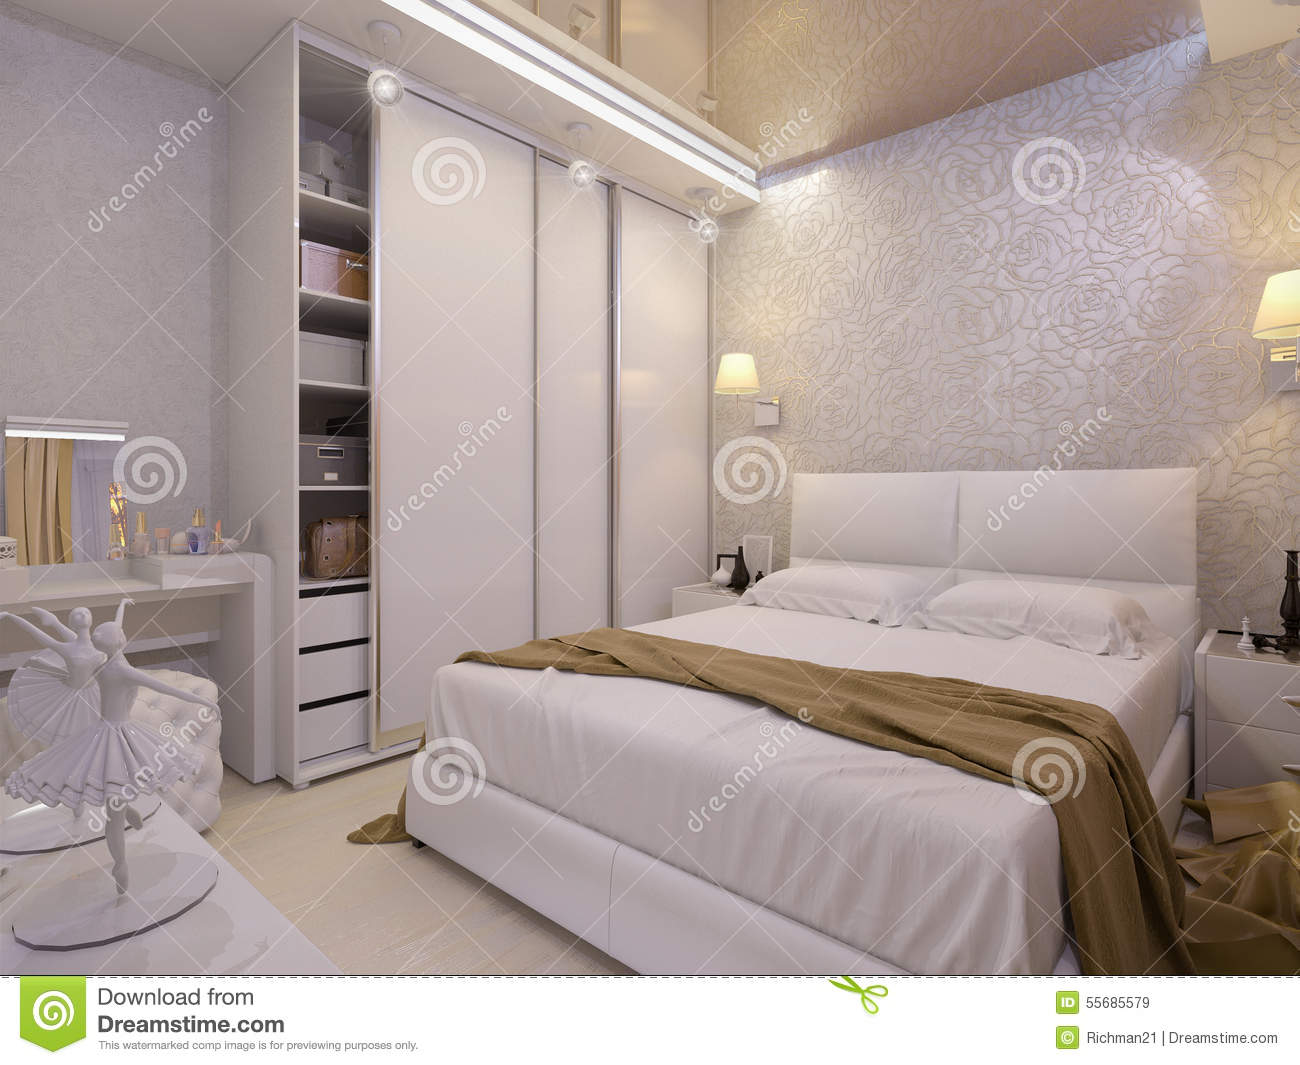 Awesome chambre a coucher blanche pictures ridgewayng for Chambre blanche